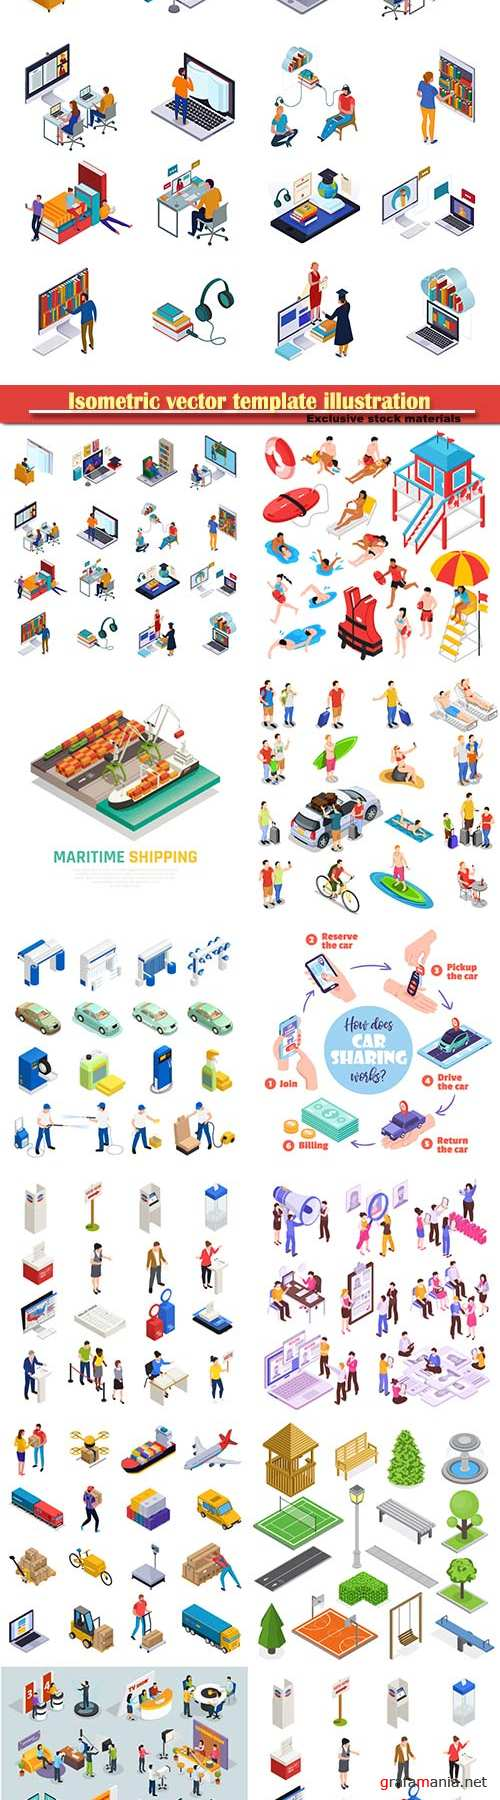 Isometric vector template illustration # 17